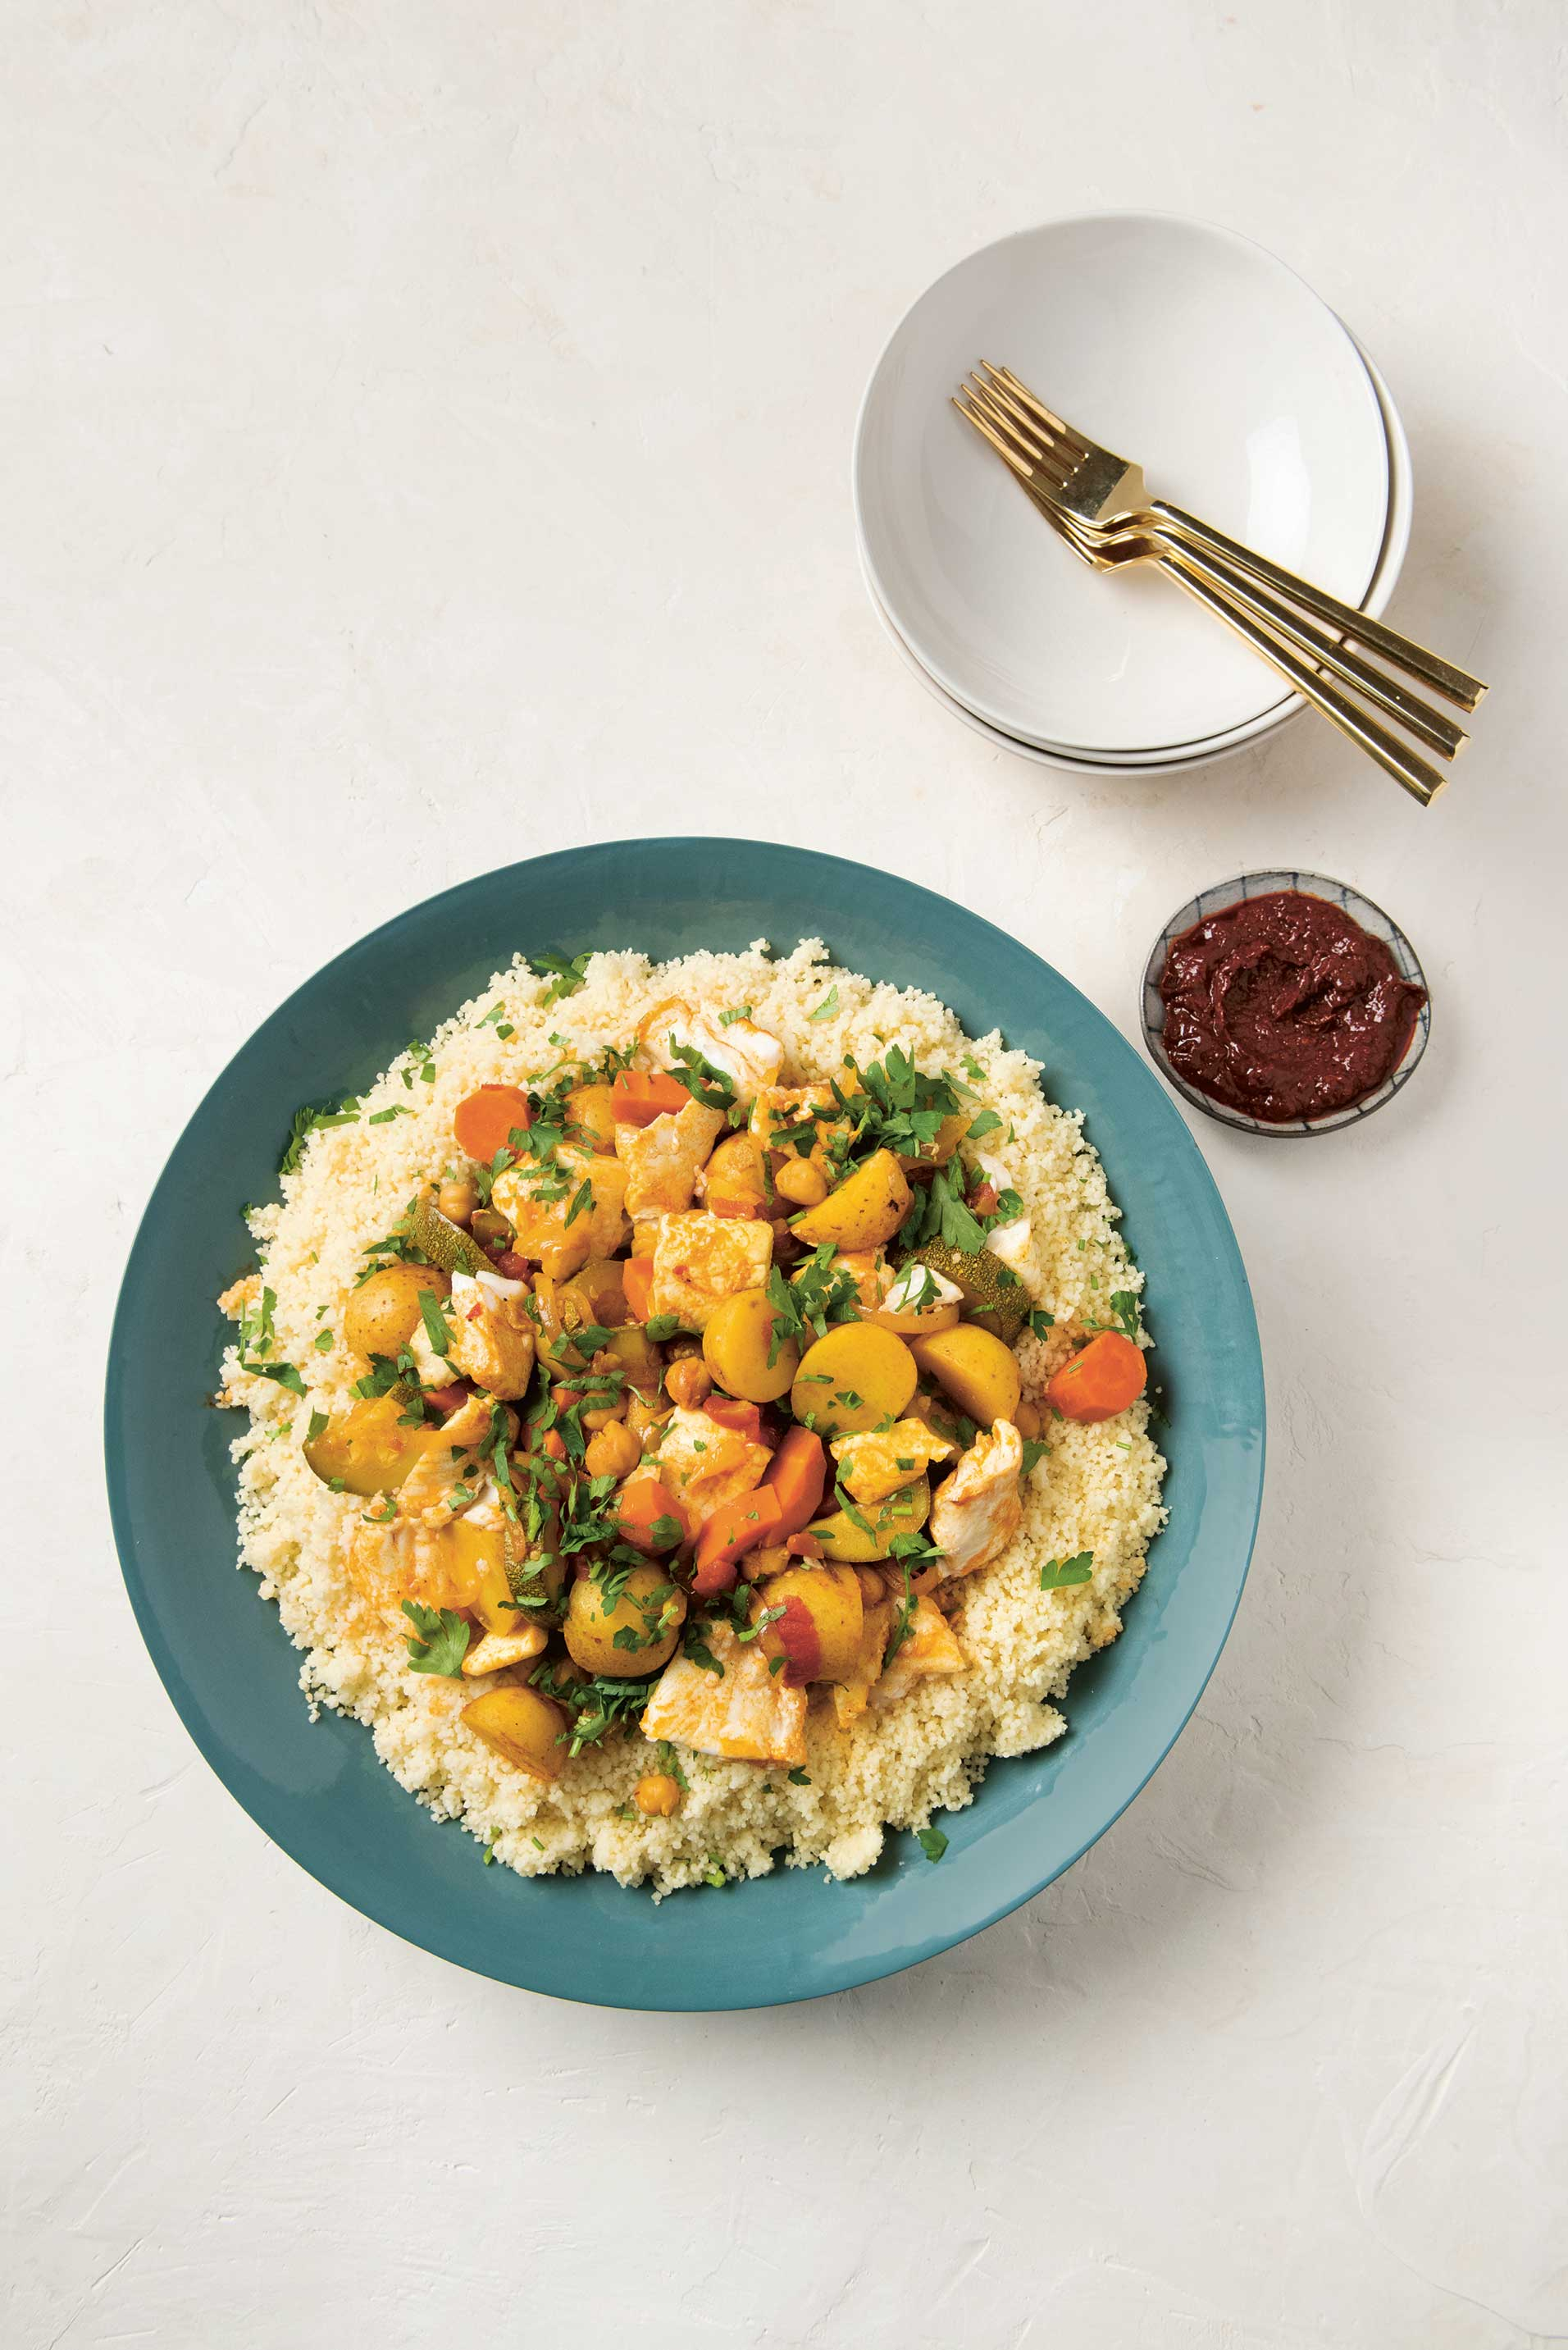 Fish Tagine Couscous from The Jewish Cookbook